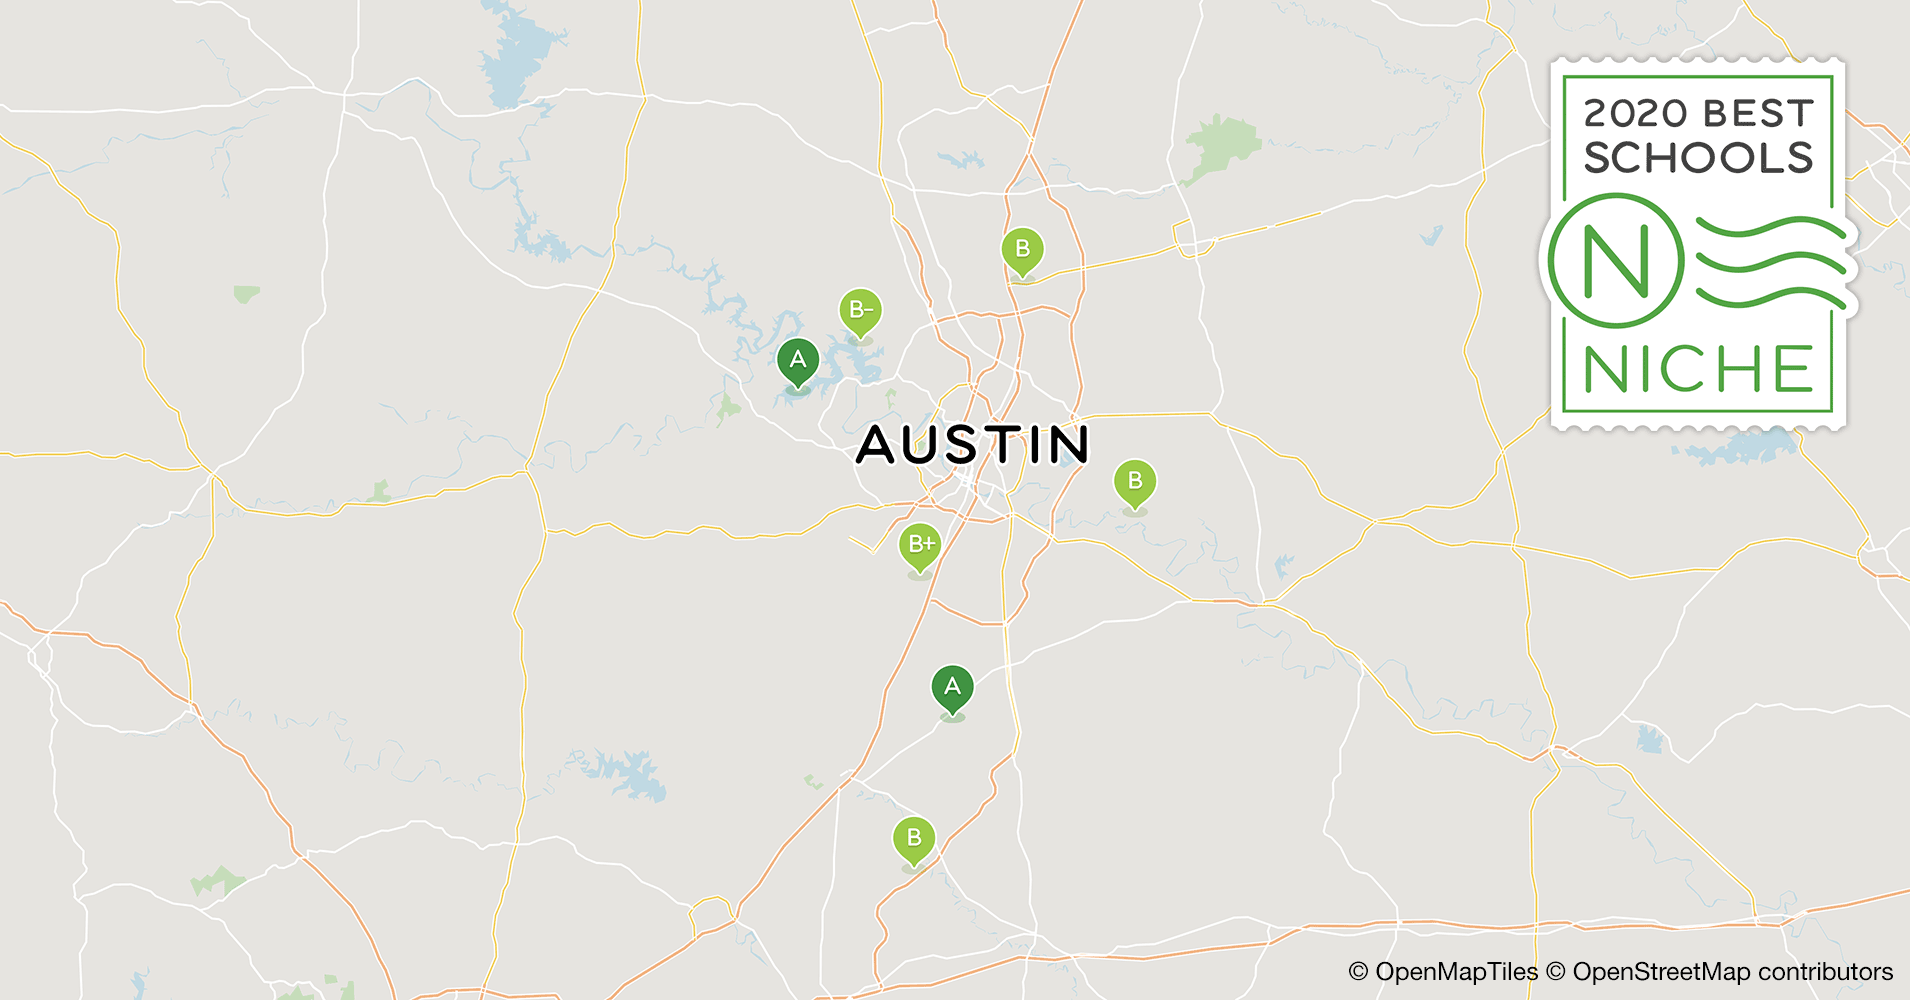 Best Places To Work In Austin 2020 2020 Best School Districts in the Austin Area   Niche